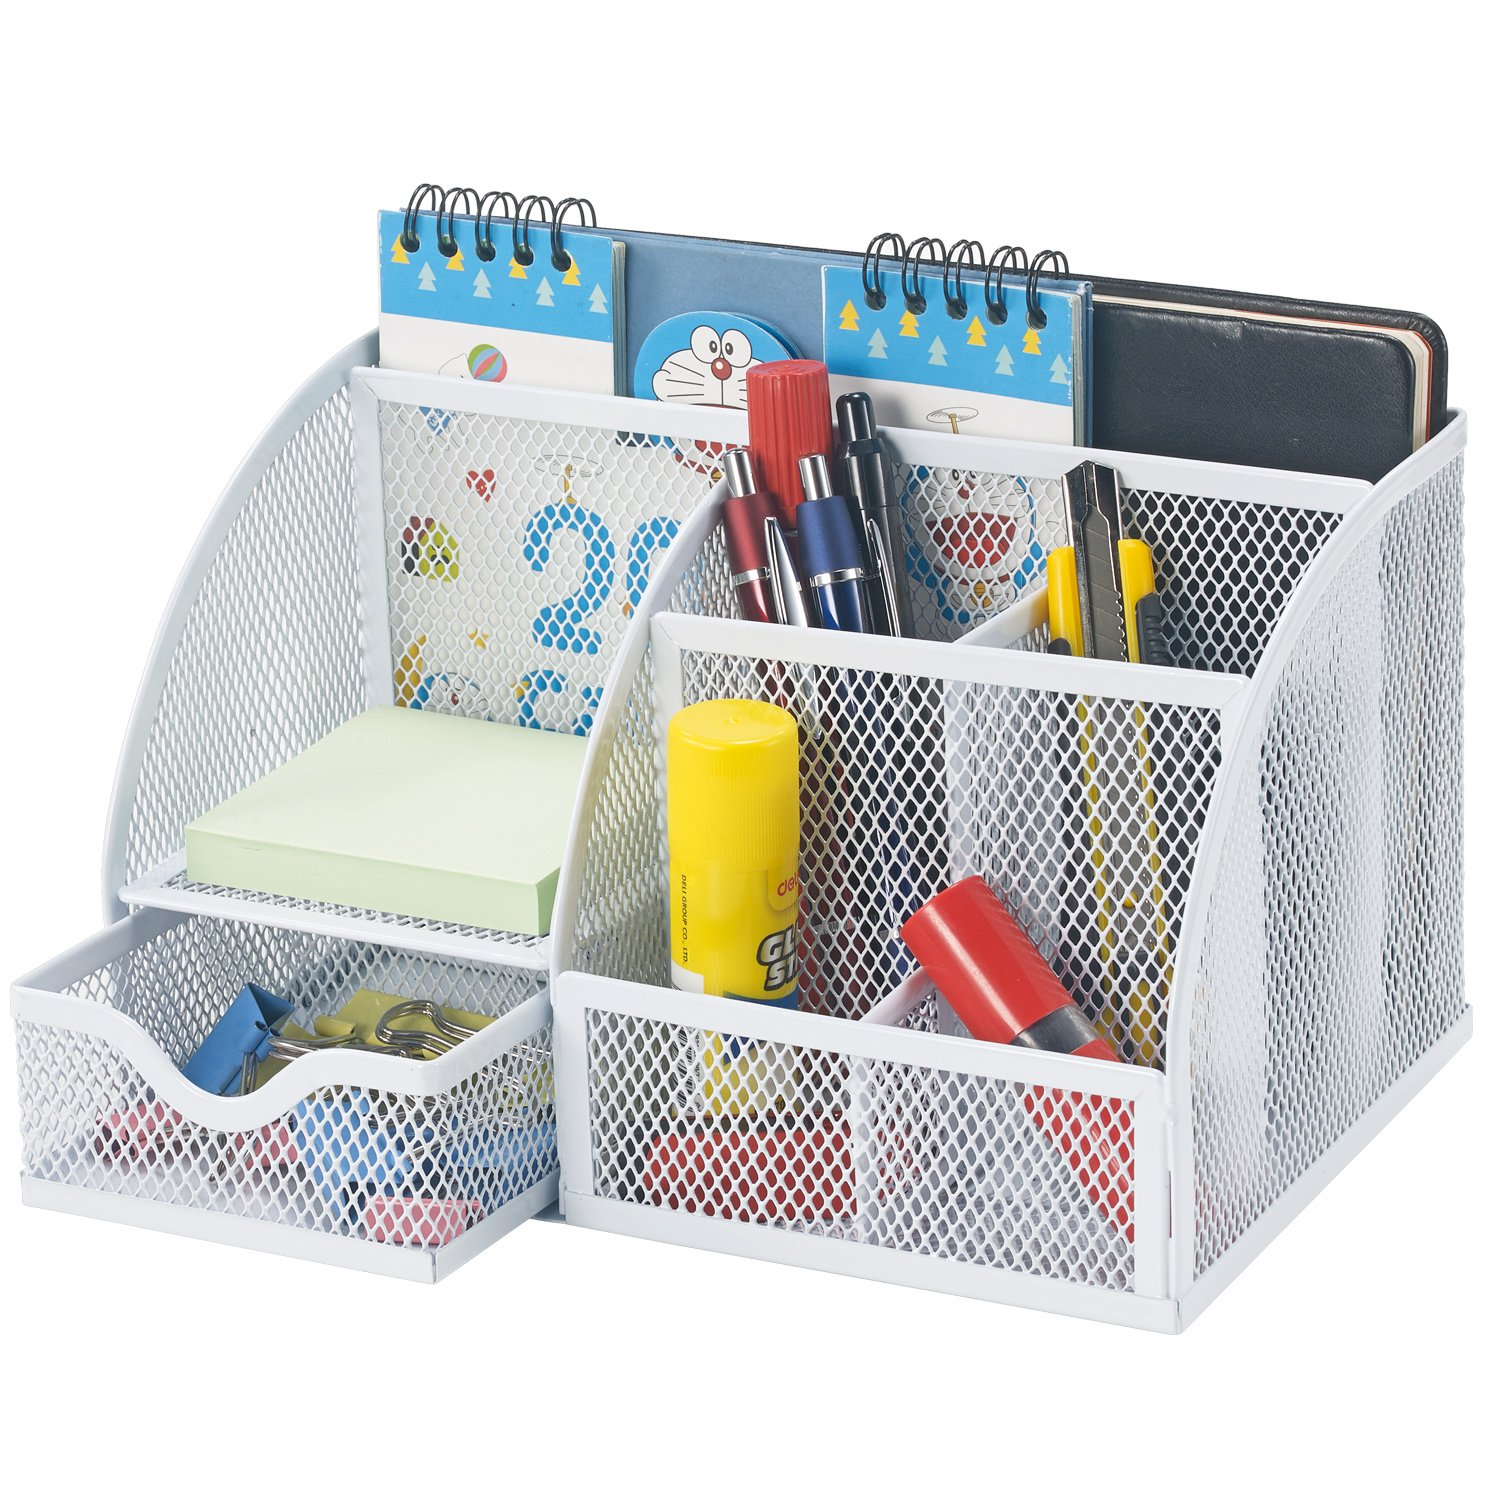 Bonsaii Home Office Steel Mesh Desktop Organizer, Desk Accessories Holder,6 Divided Compartments with 1 Slide Drawer, White(W6348)